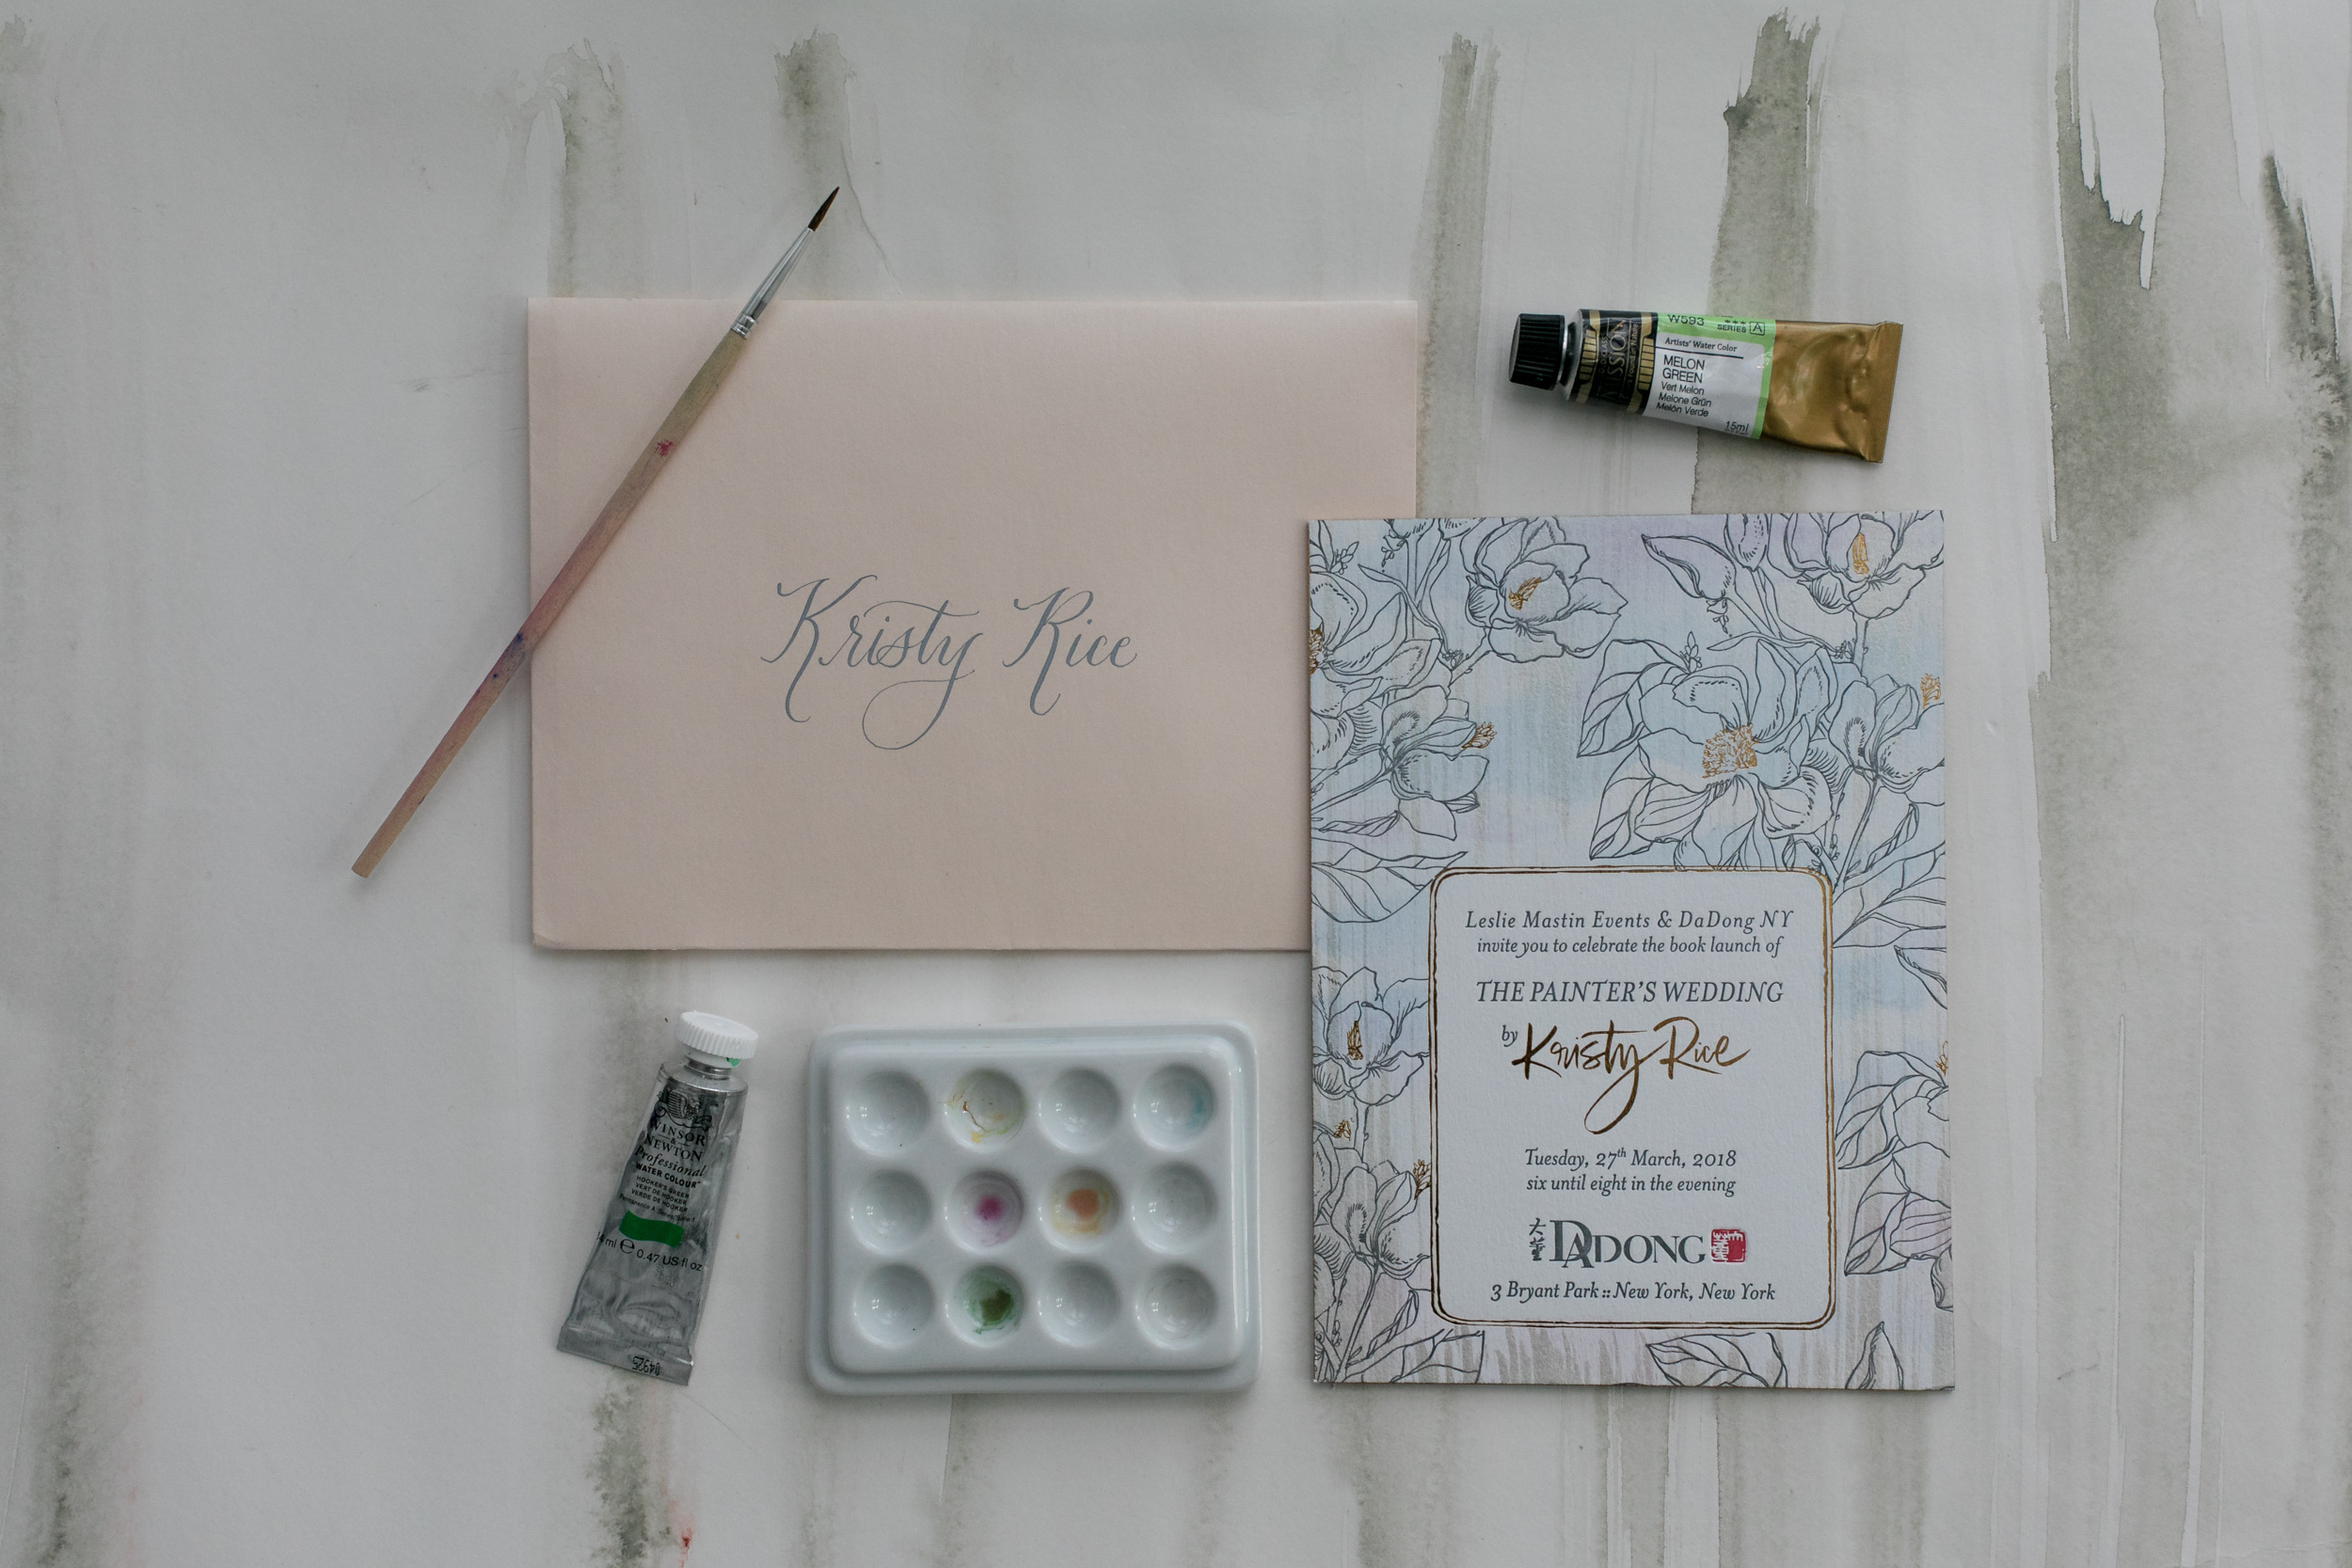 The Painters Wedding Book Launch - Momental Designs